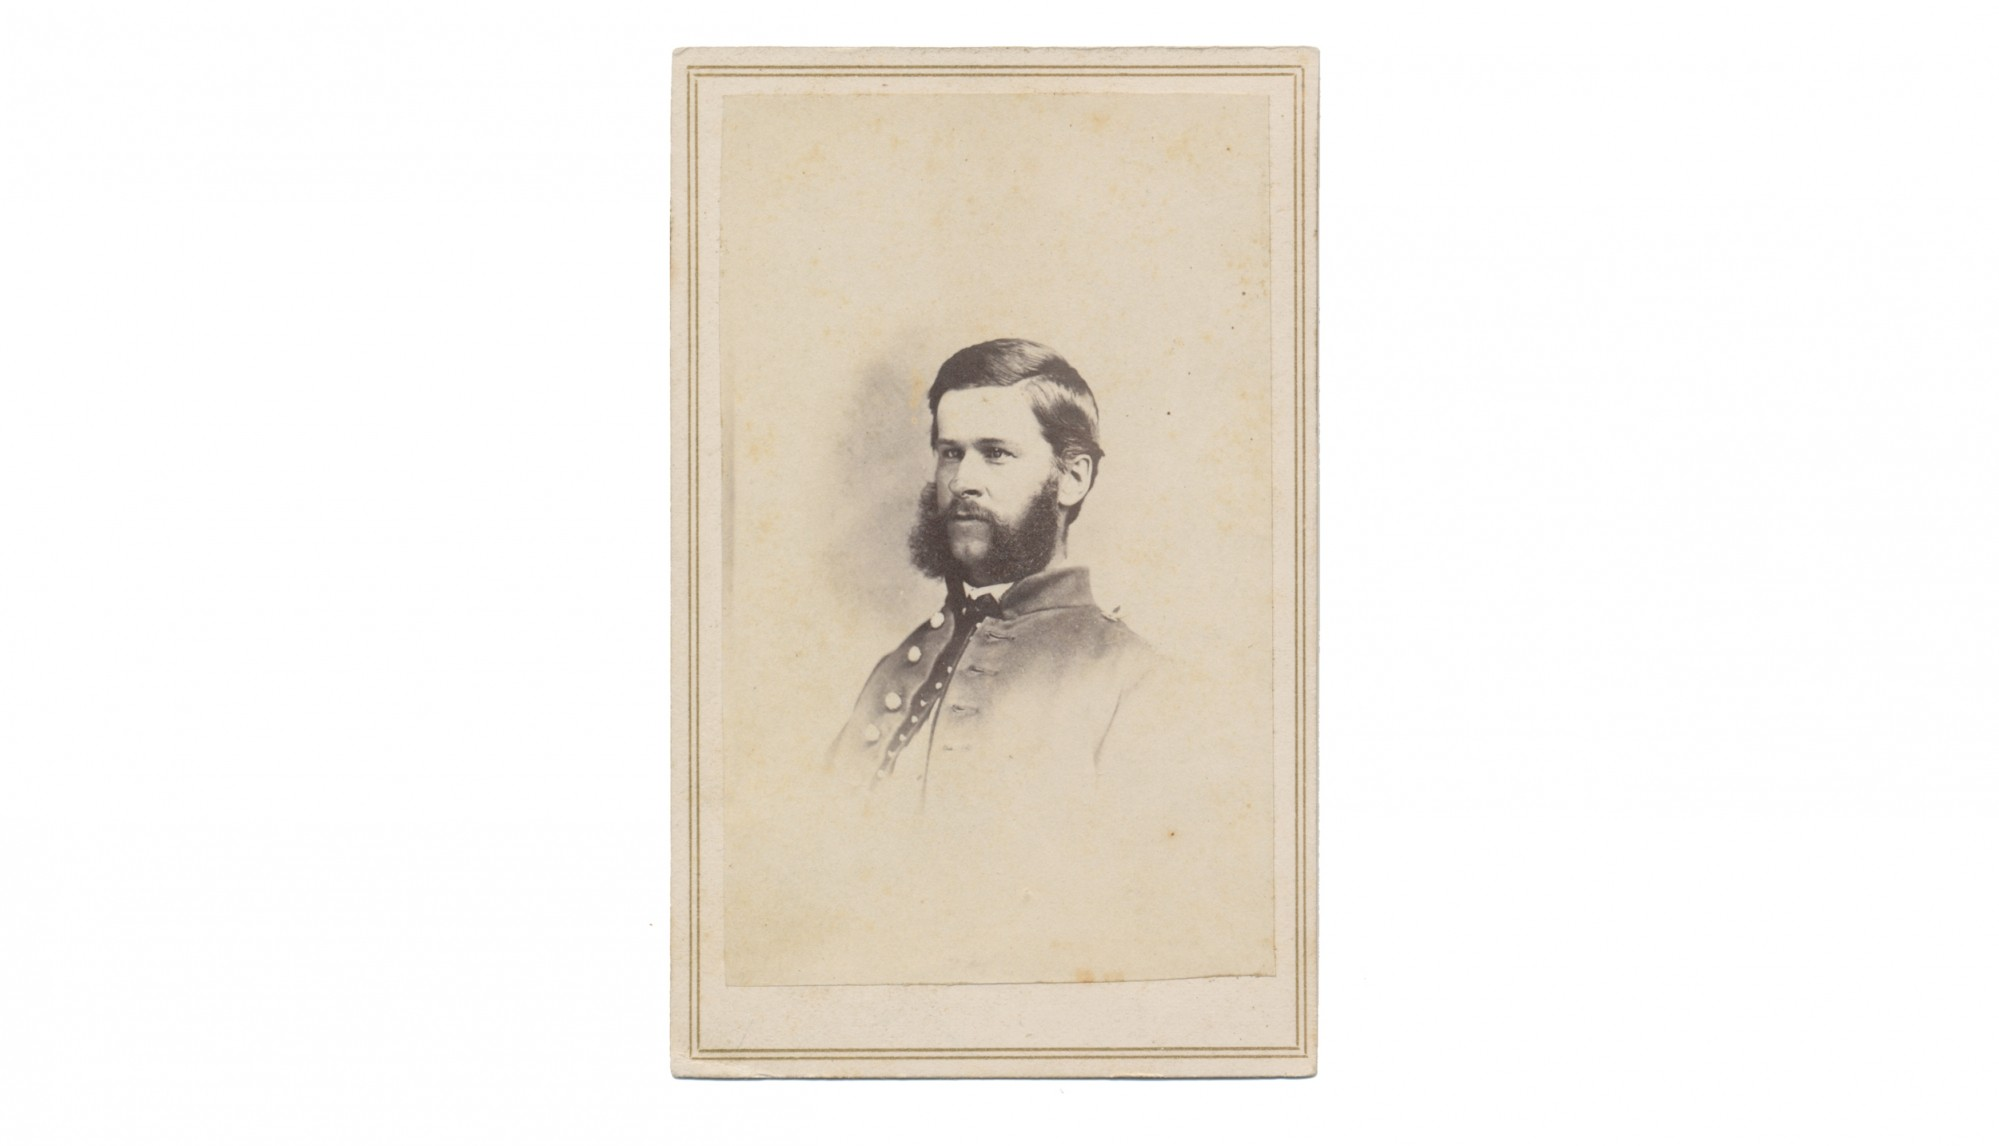 CDV OF 1ST CONNECTICUT HEAVY ARTILLERY SOLDIER